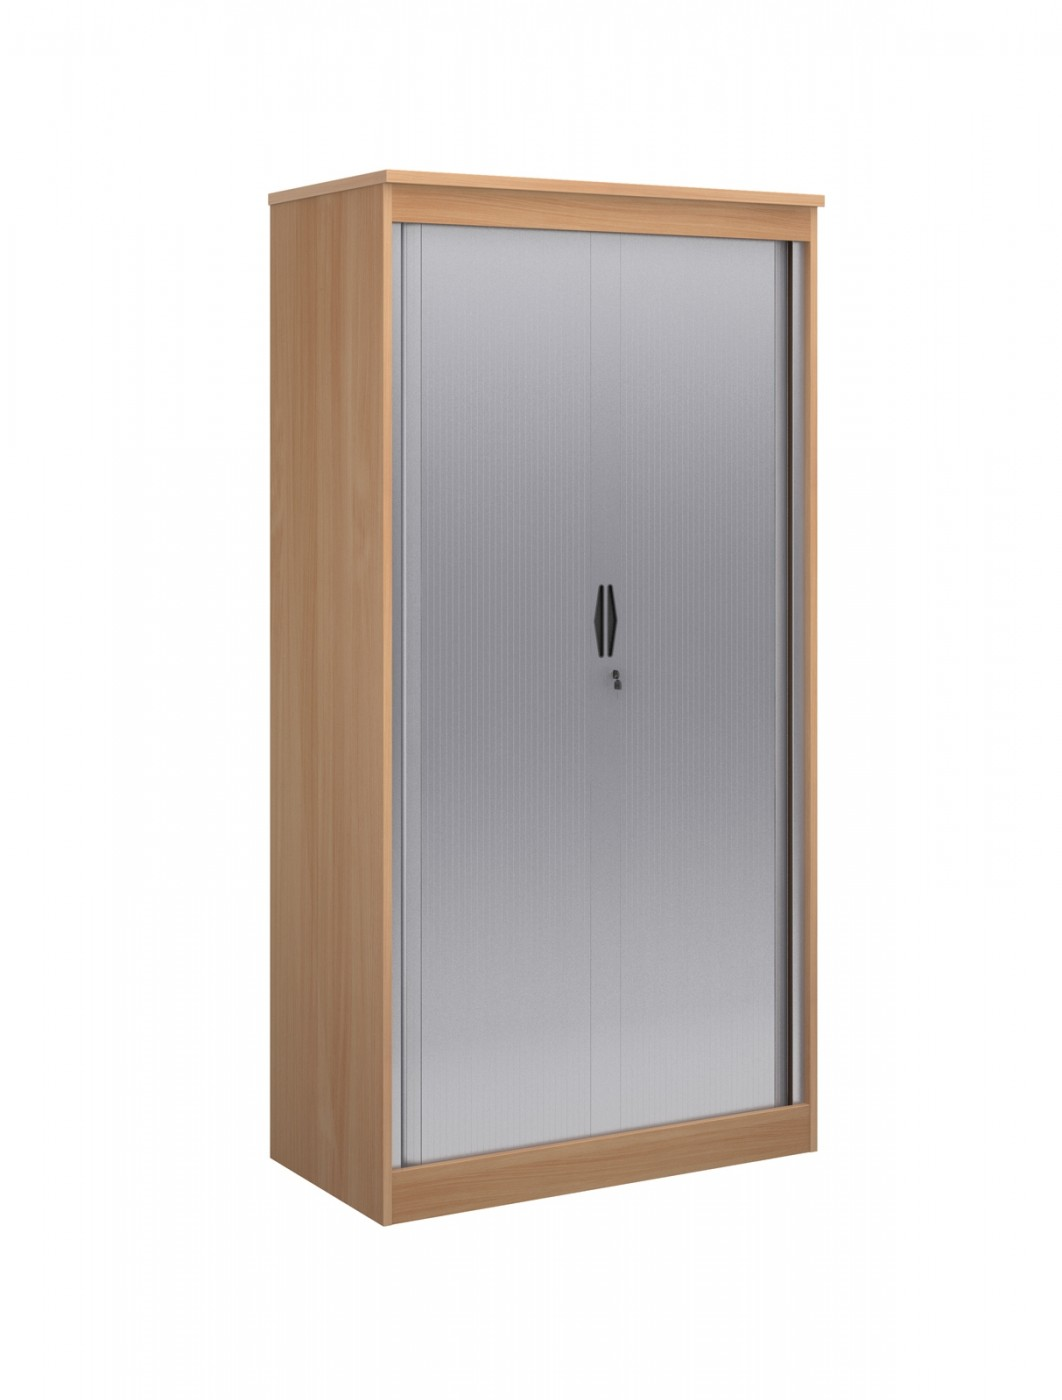 Tambour door paperflow usa easyoffice 41h in tambour for 1 door cupboard